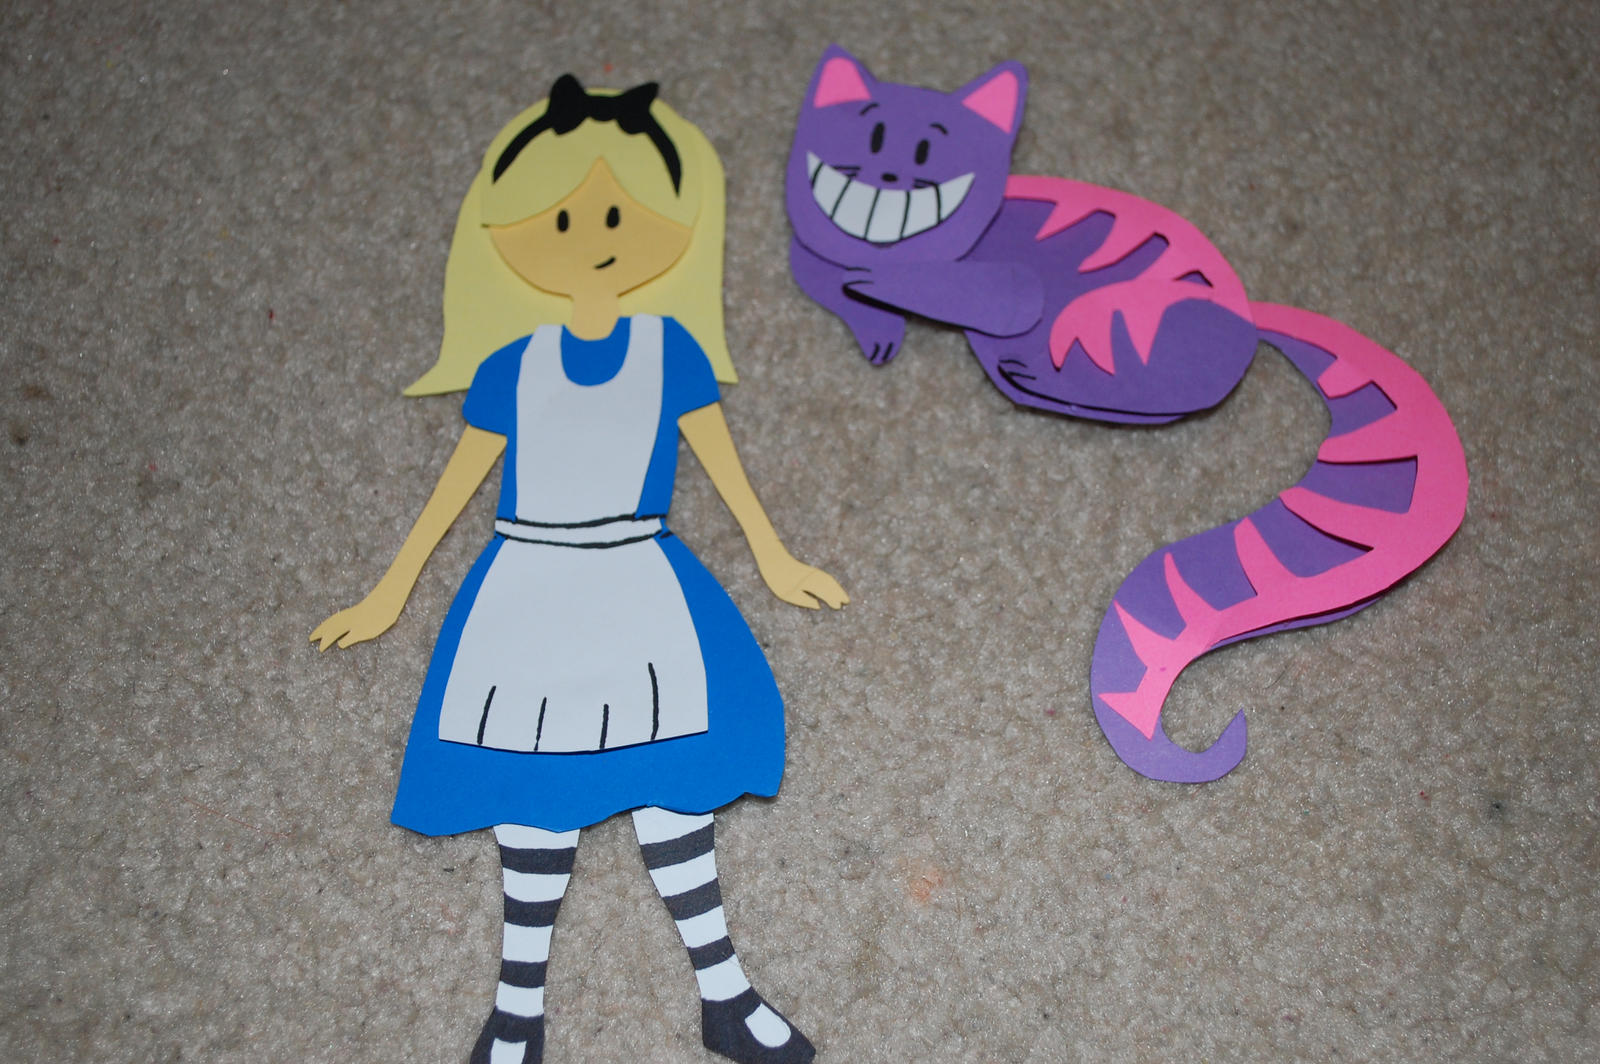 Alice in wonderland papercraft by kisses1991 on deviantart Alice and wonderland art projects